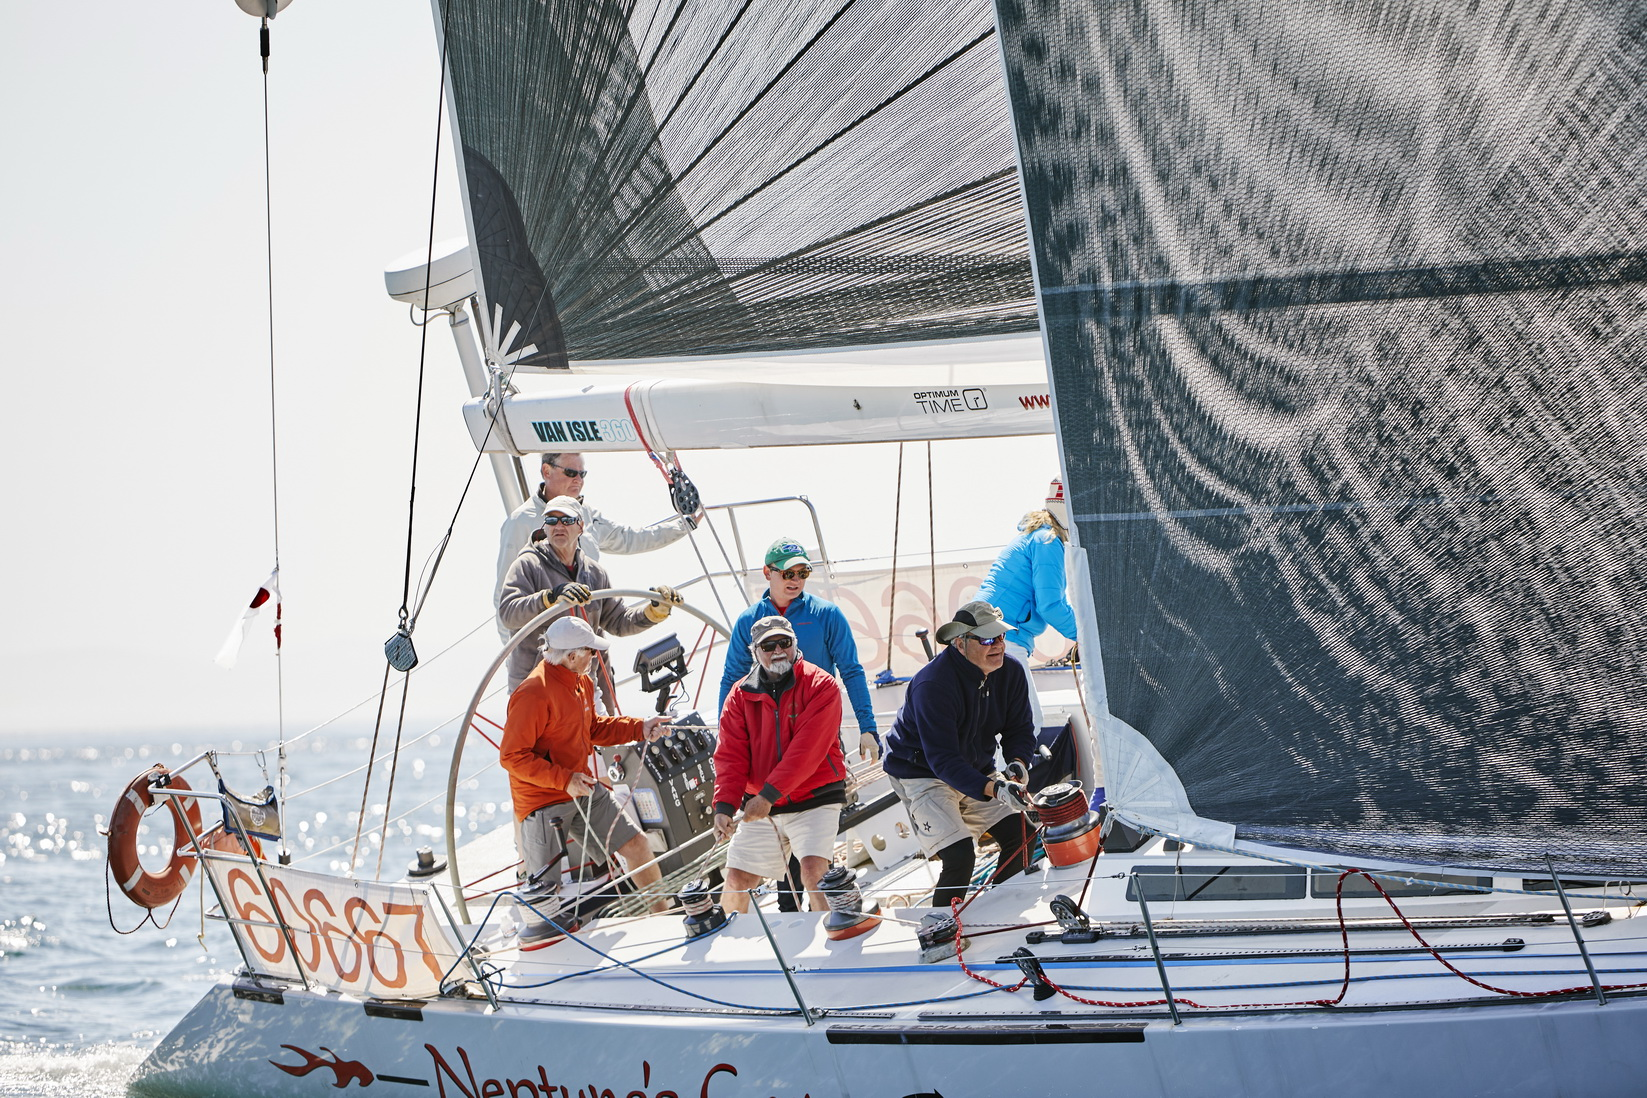 Victoria-Yacht-Races-BC-KyleFord-0924 1_resize